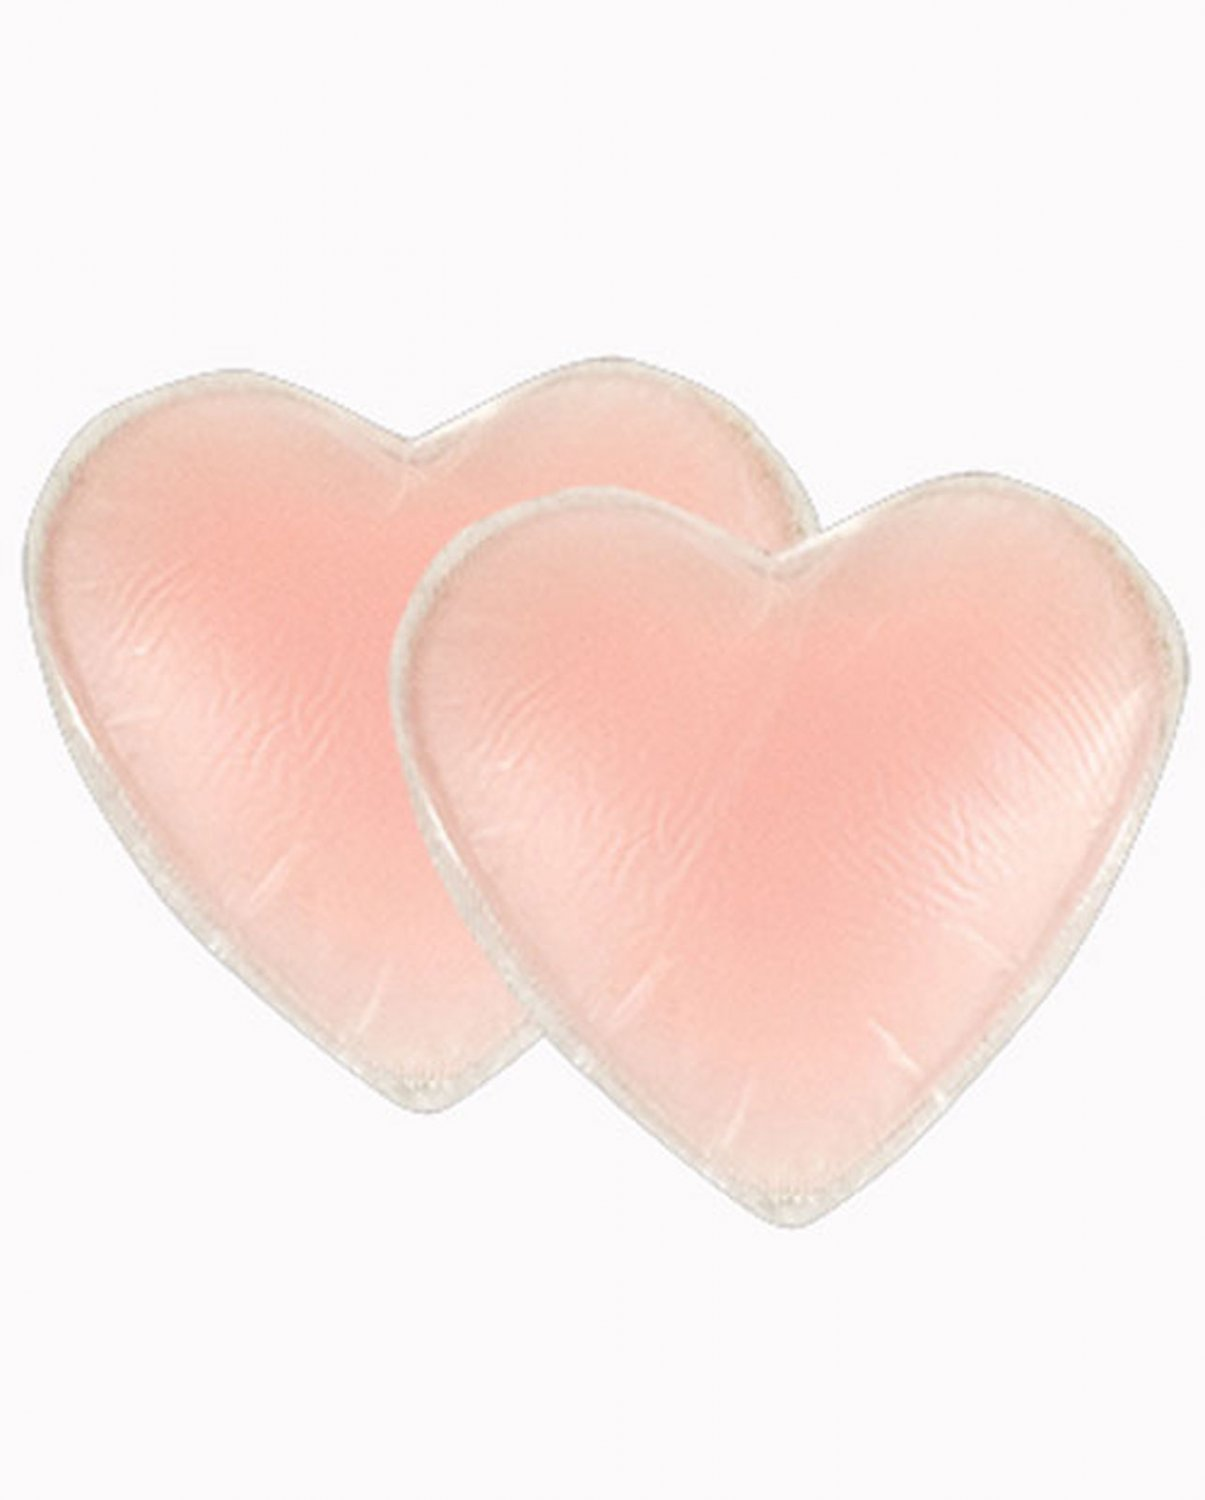 Braza Silicone Gel Heart Tops Reusable Nipple Covers 7900H, Pink